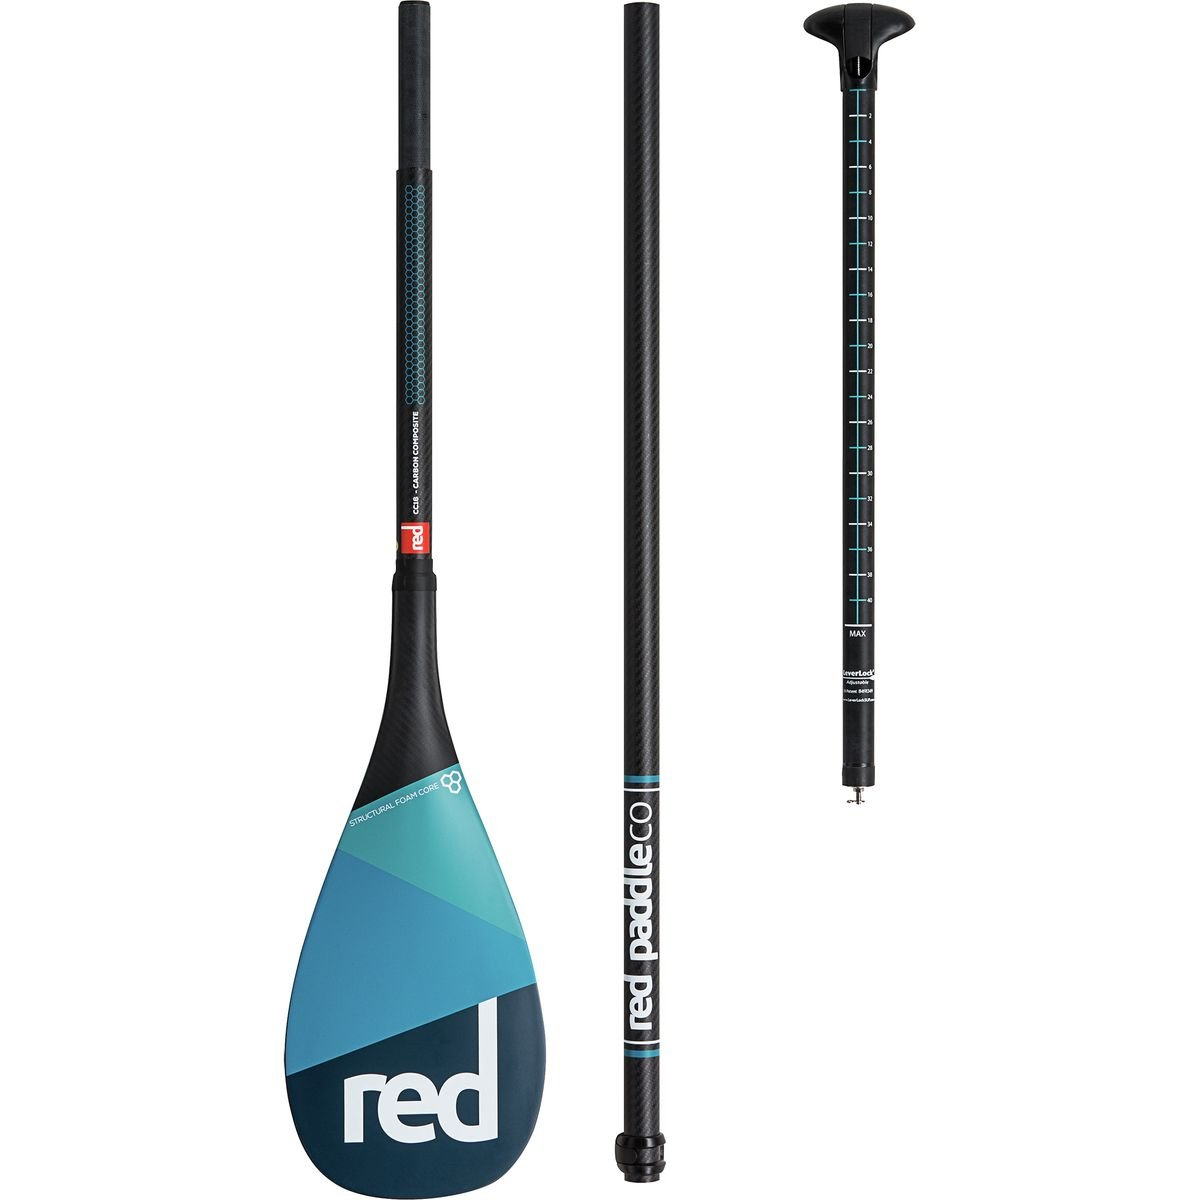 Amazon.com : 2018 Red Paddle Co Carbon Adjustable 70-86